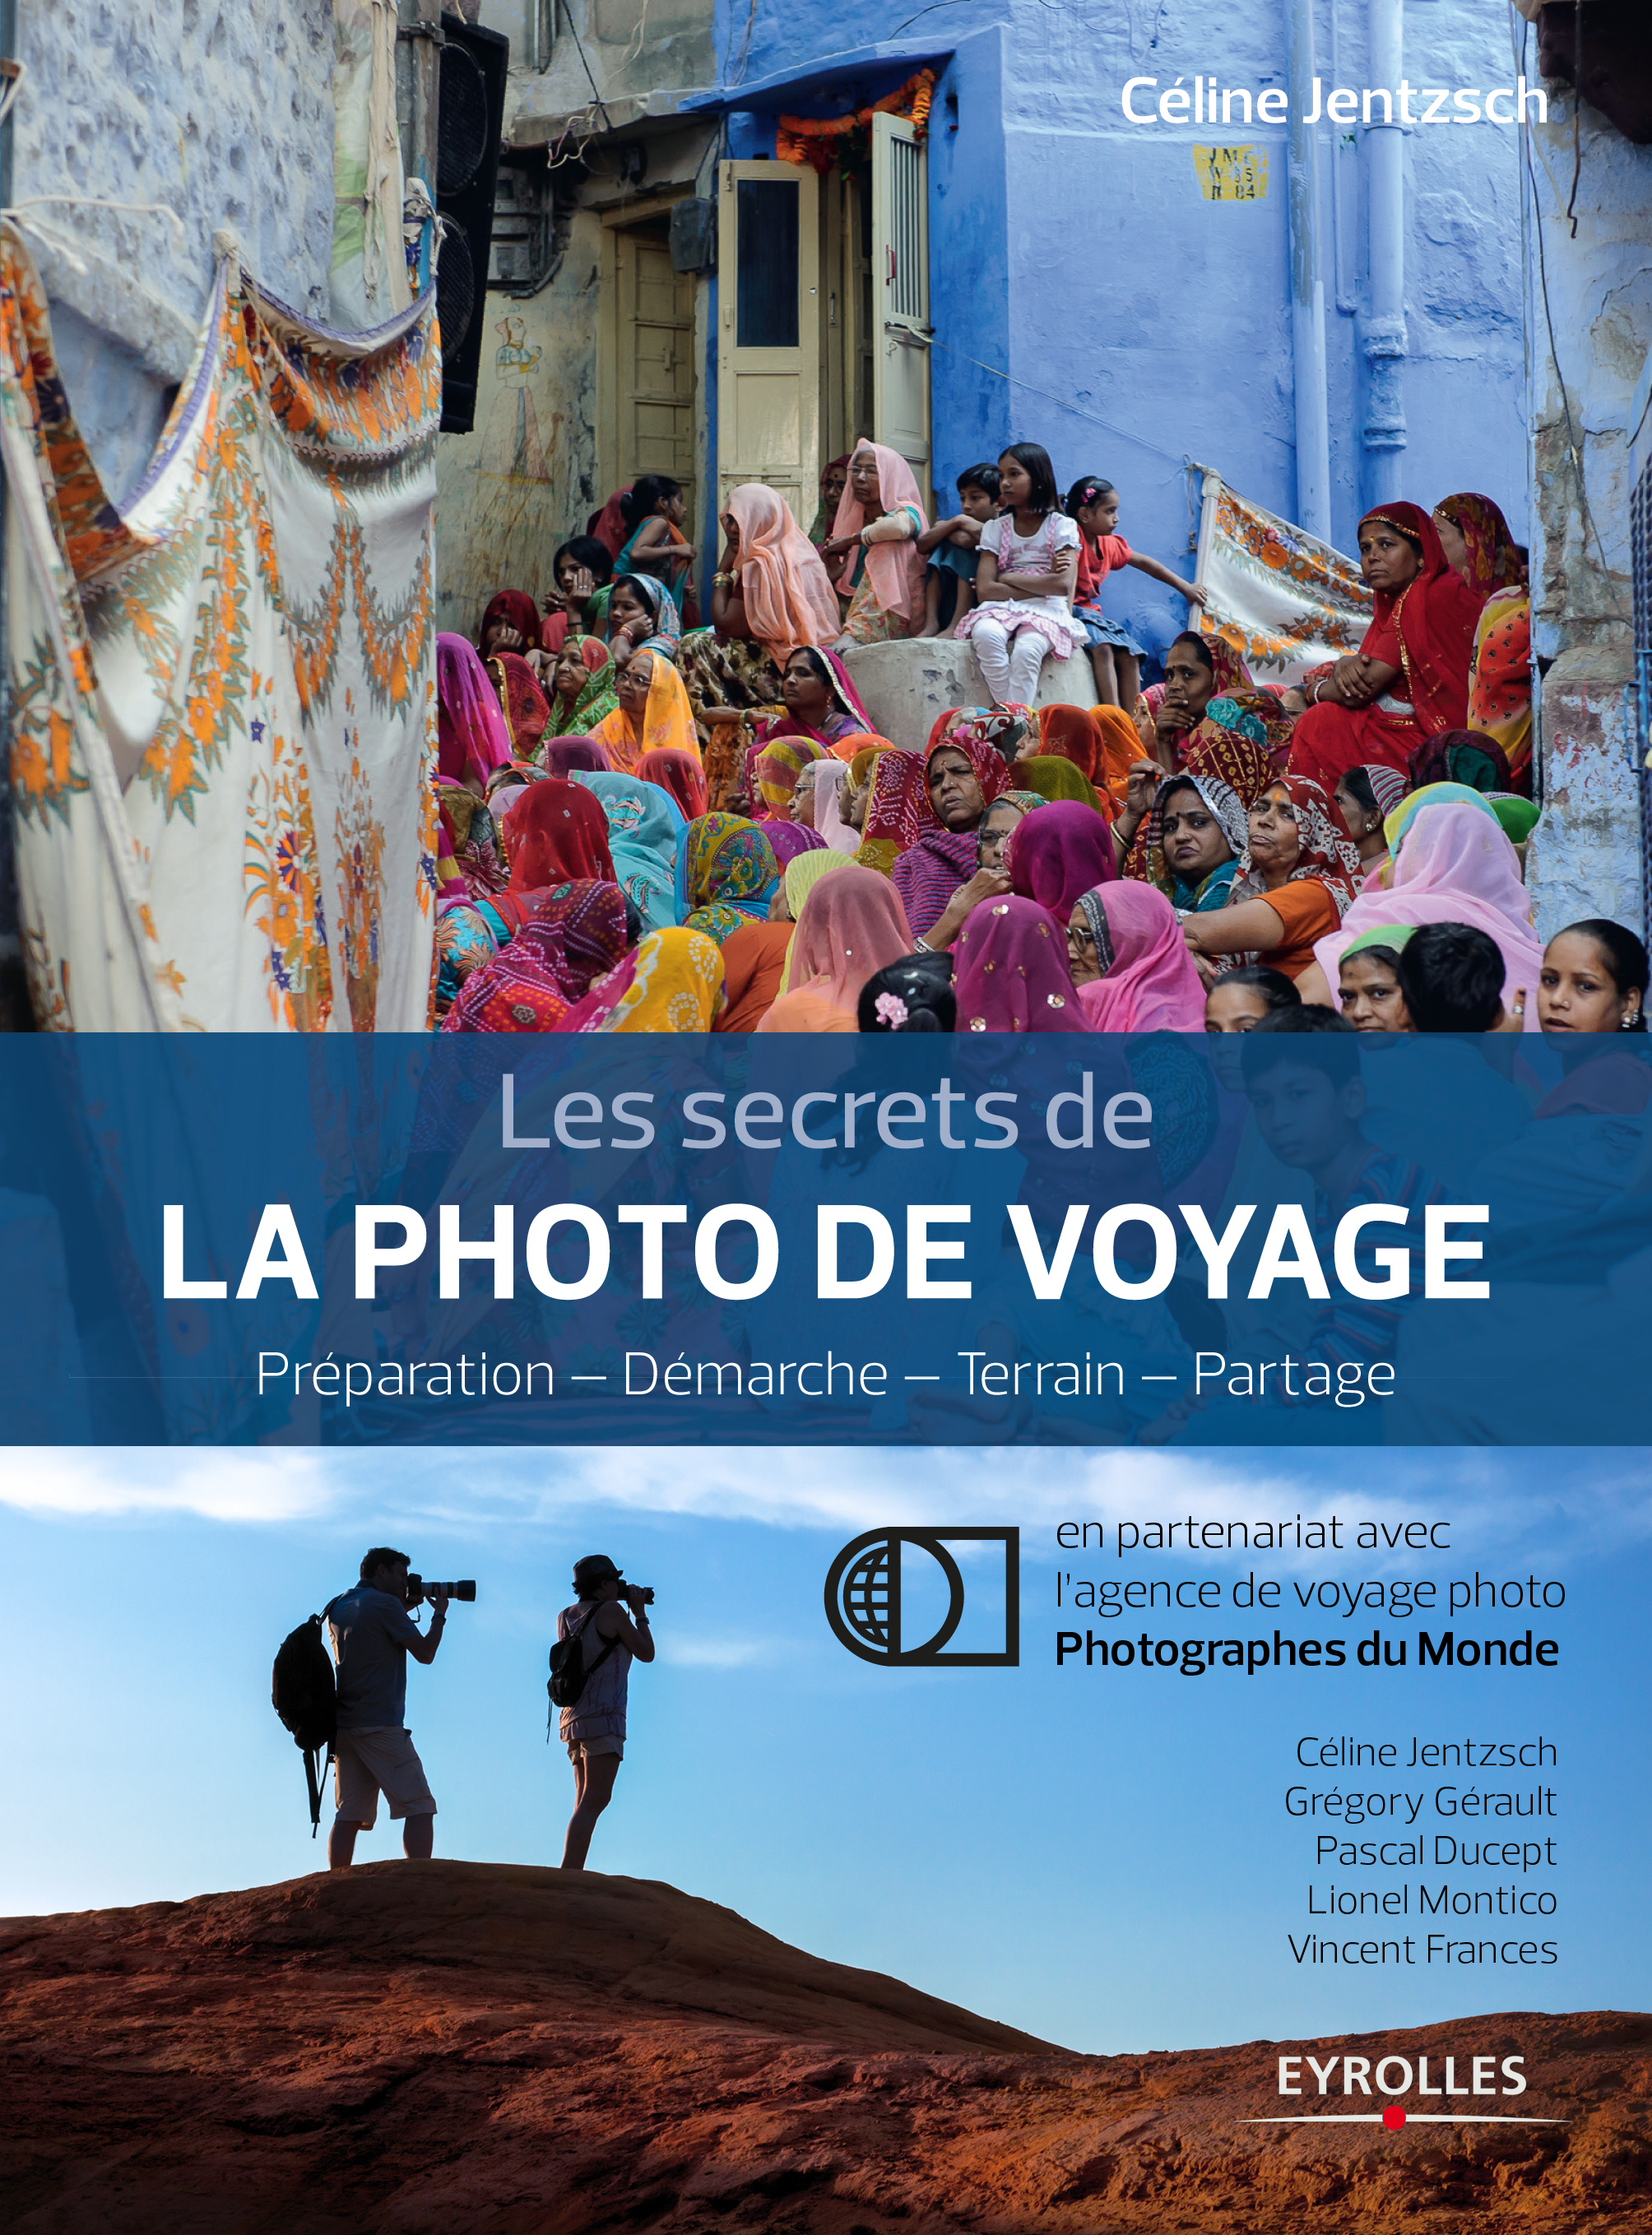 Les Secret de la photo de Voyage